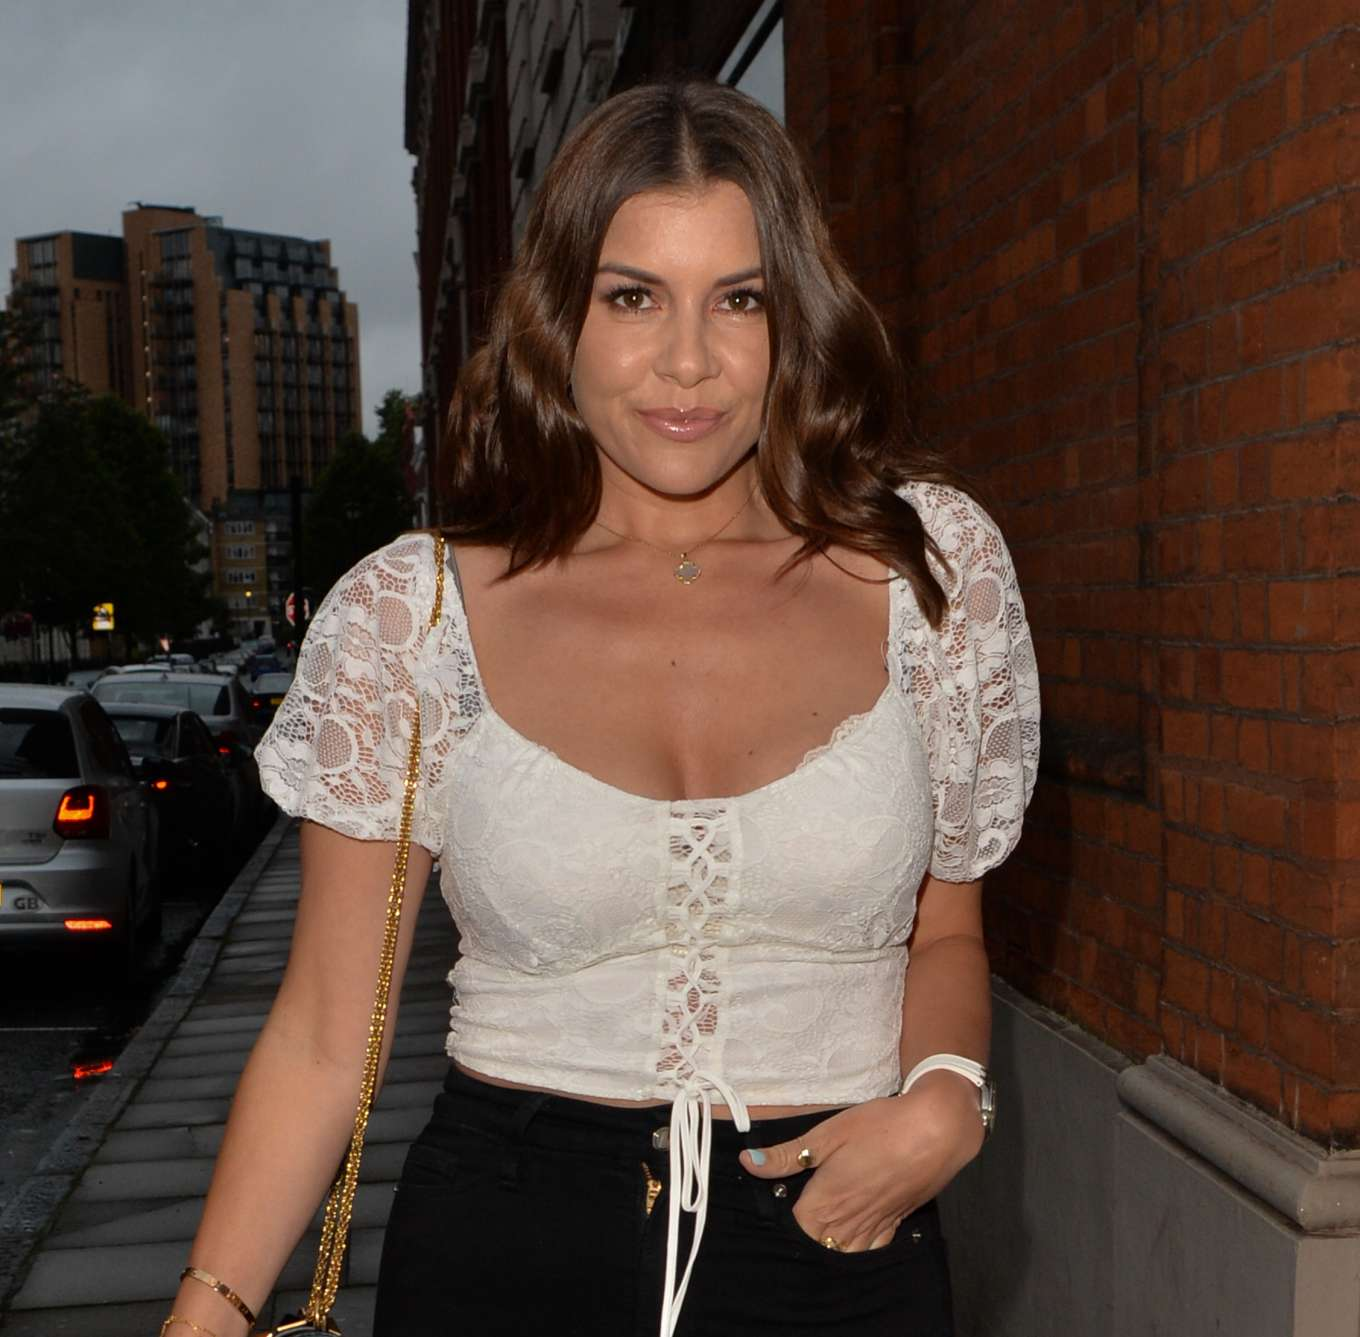 Imogen Thomas - At Chiltern Firehouse in London